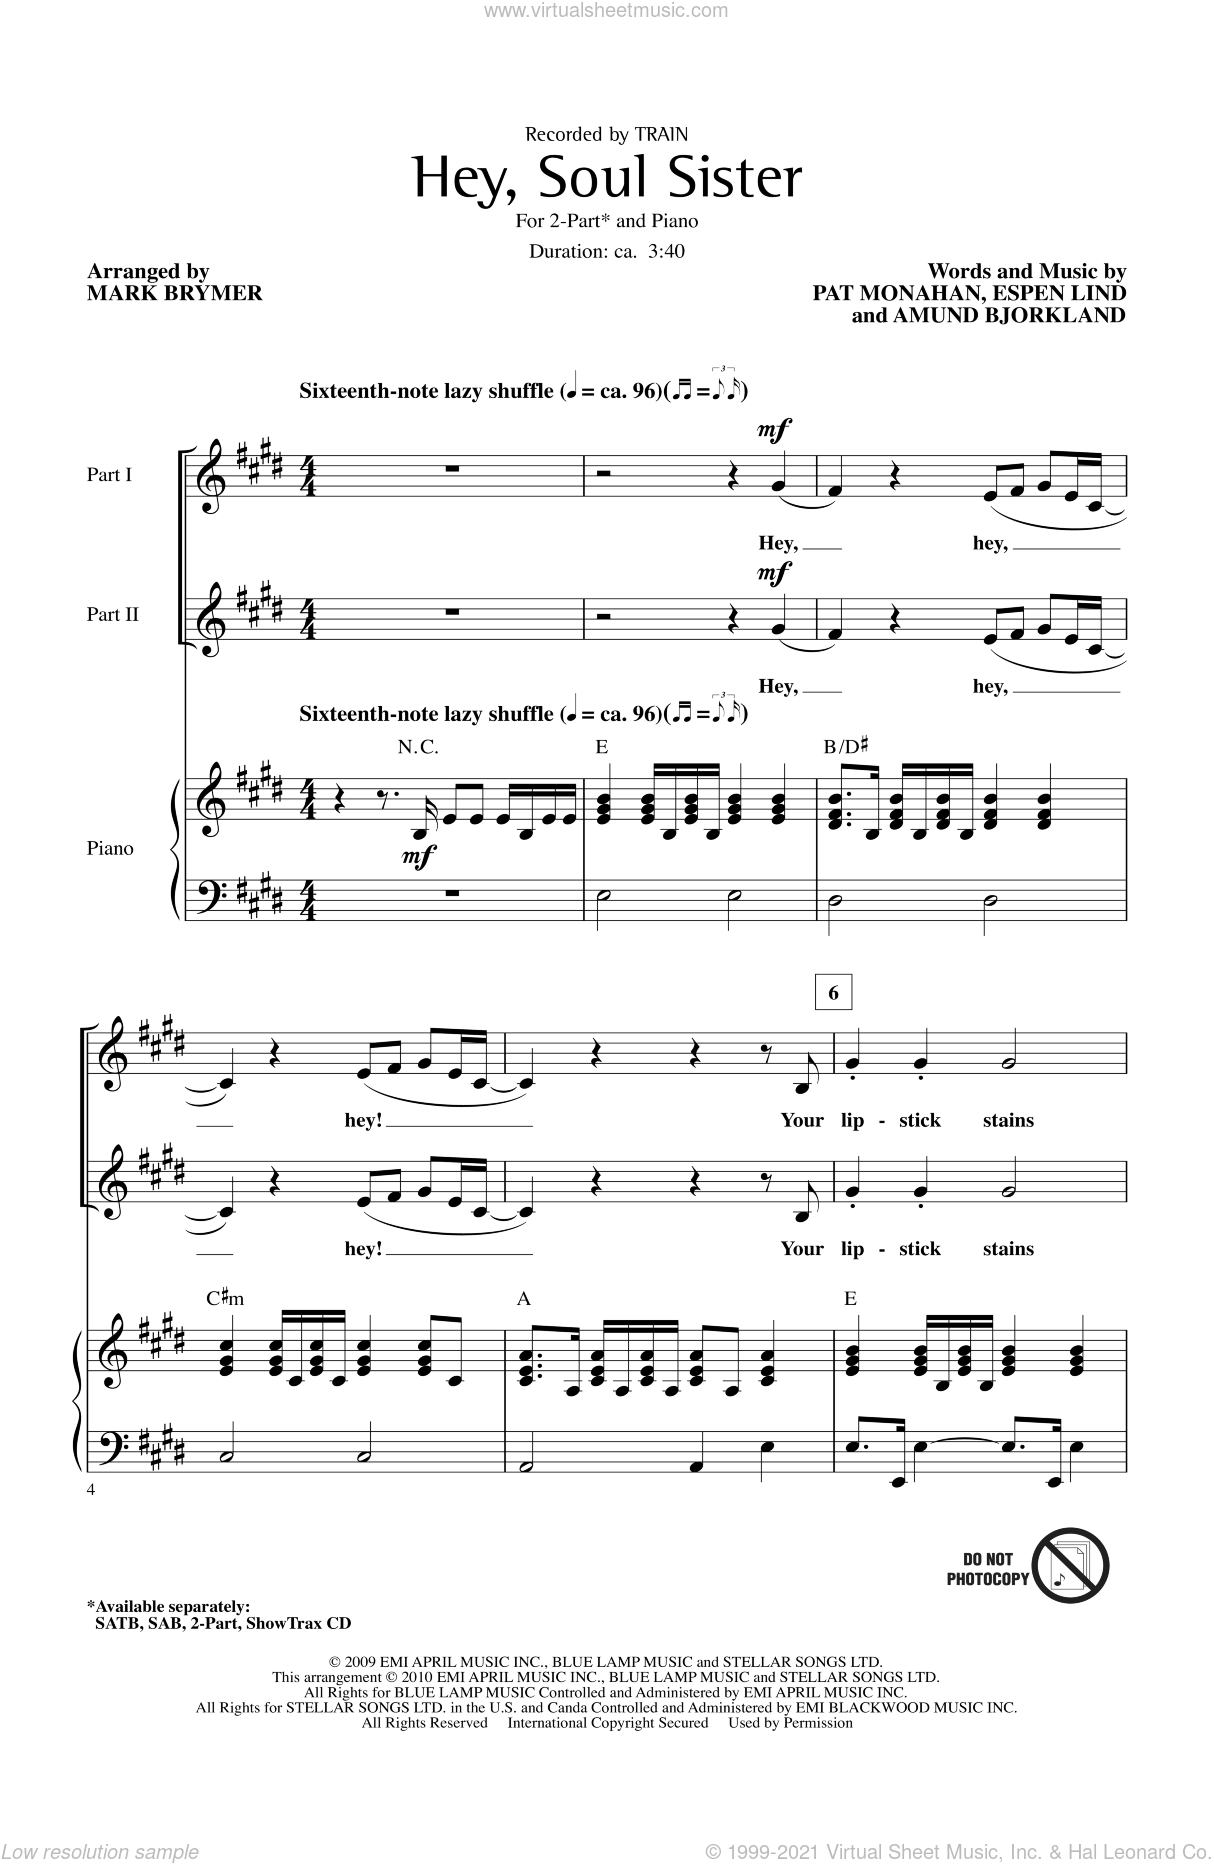 Hey, Soul Sister sheet music for choir and piano (duets) by Amund Bjorklund, Mark Brymer, Pat Monahan and Train. Score Image Preview.